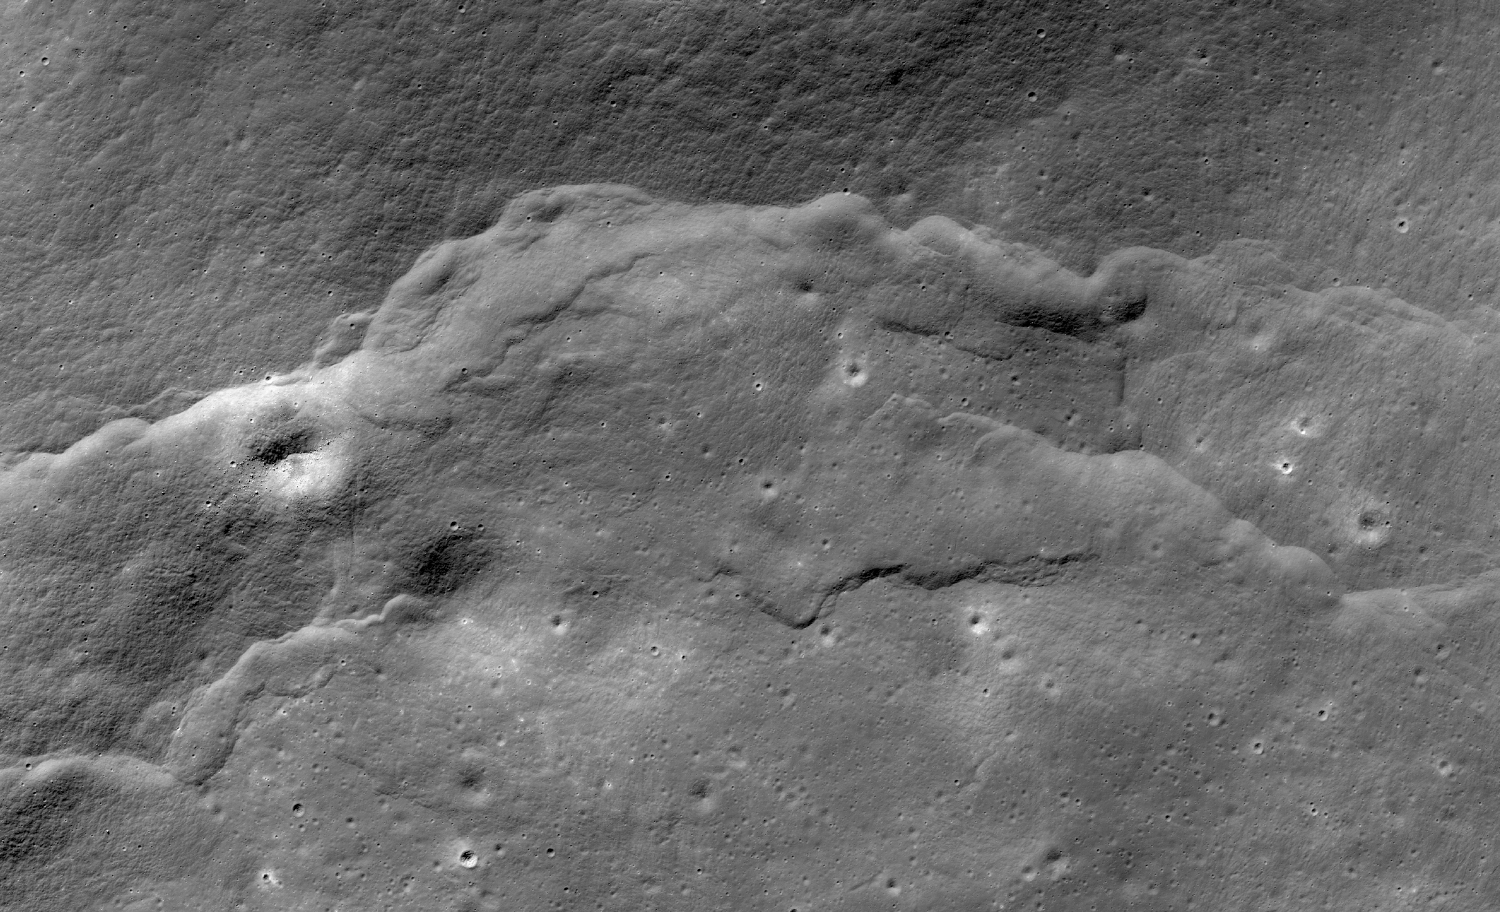 As this lobate scarp formed, it deformed a Copernican crater into a dimple-like feature. Lobate scarps provide evidence that the moon is shrinking. Credit: NASA/Goddard Space Flight Center/Arizona State University